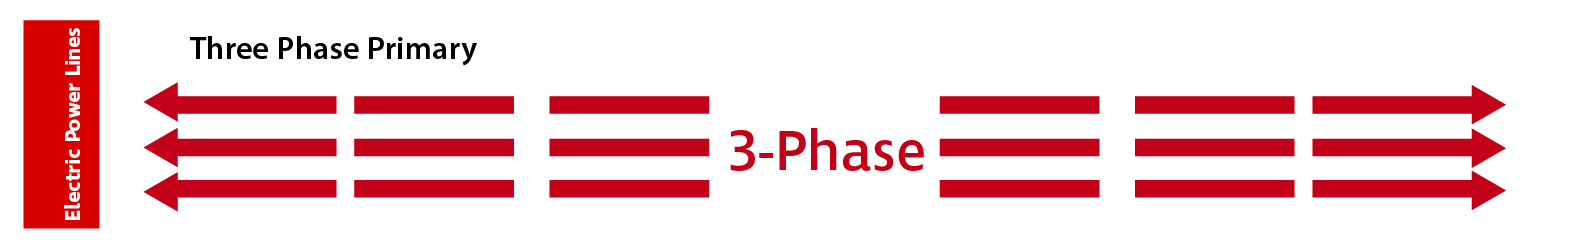 used to mark three phase primary